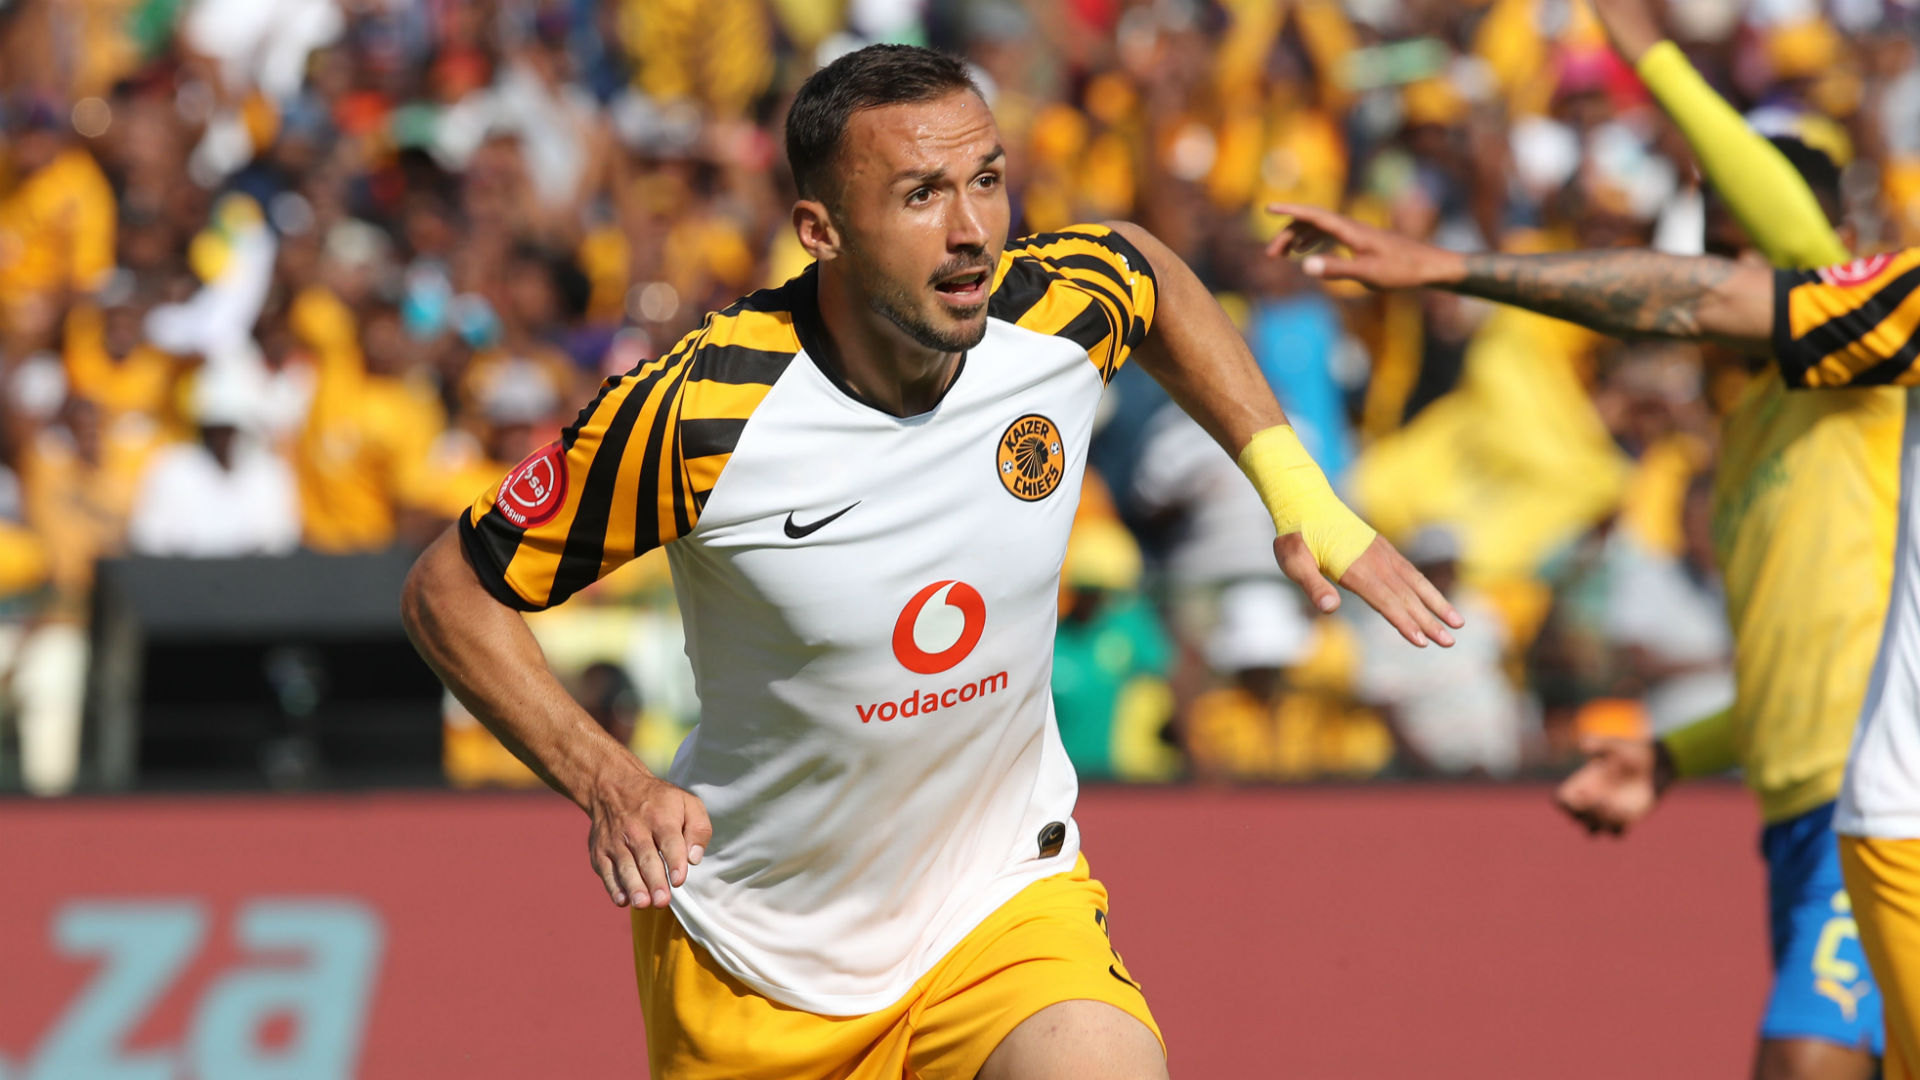 Don't expect miracles from Nurkovic, cautions Kaizer Chiefs defender Mphahlele